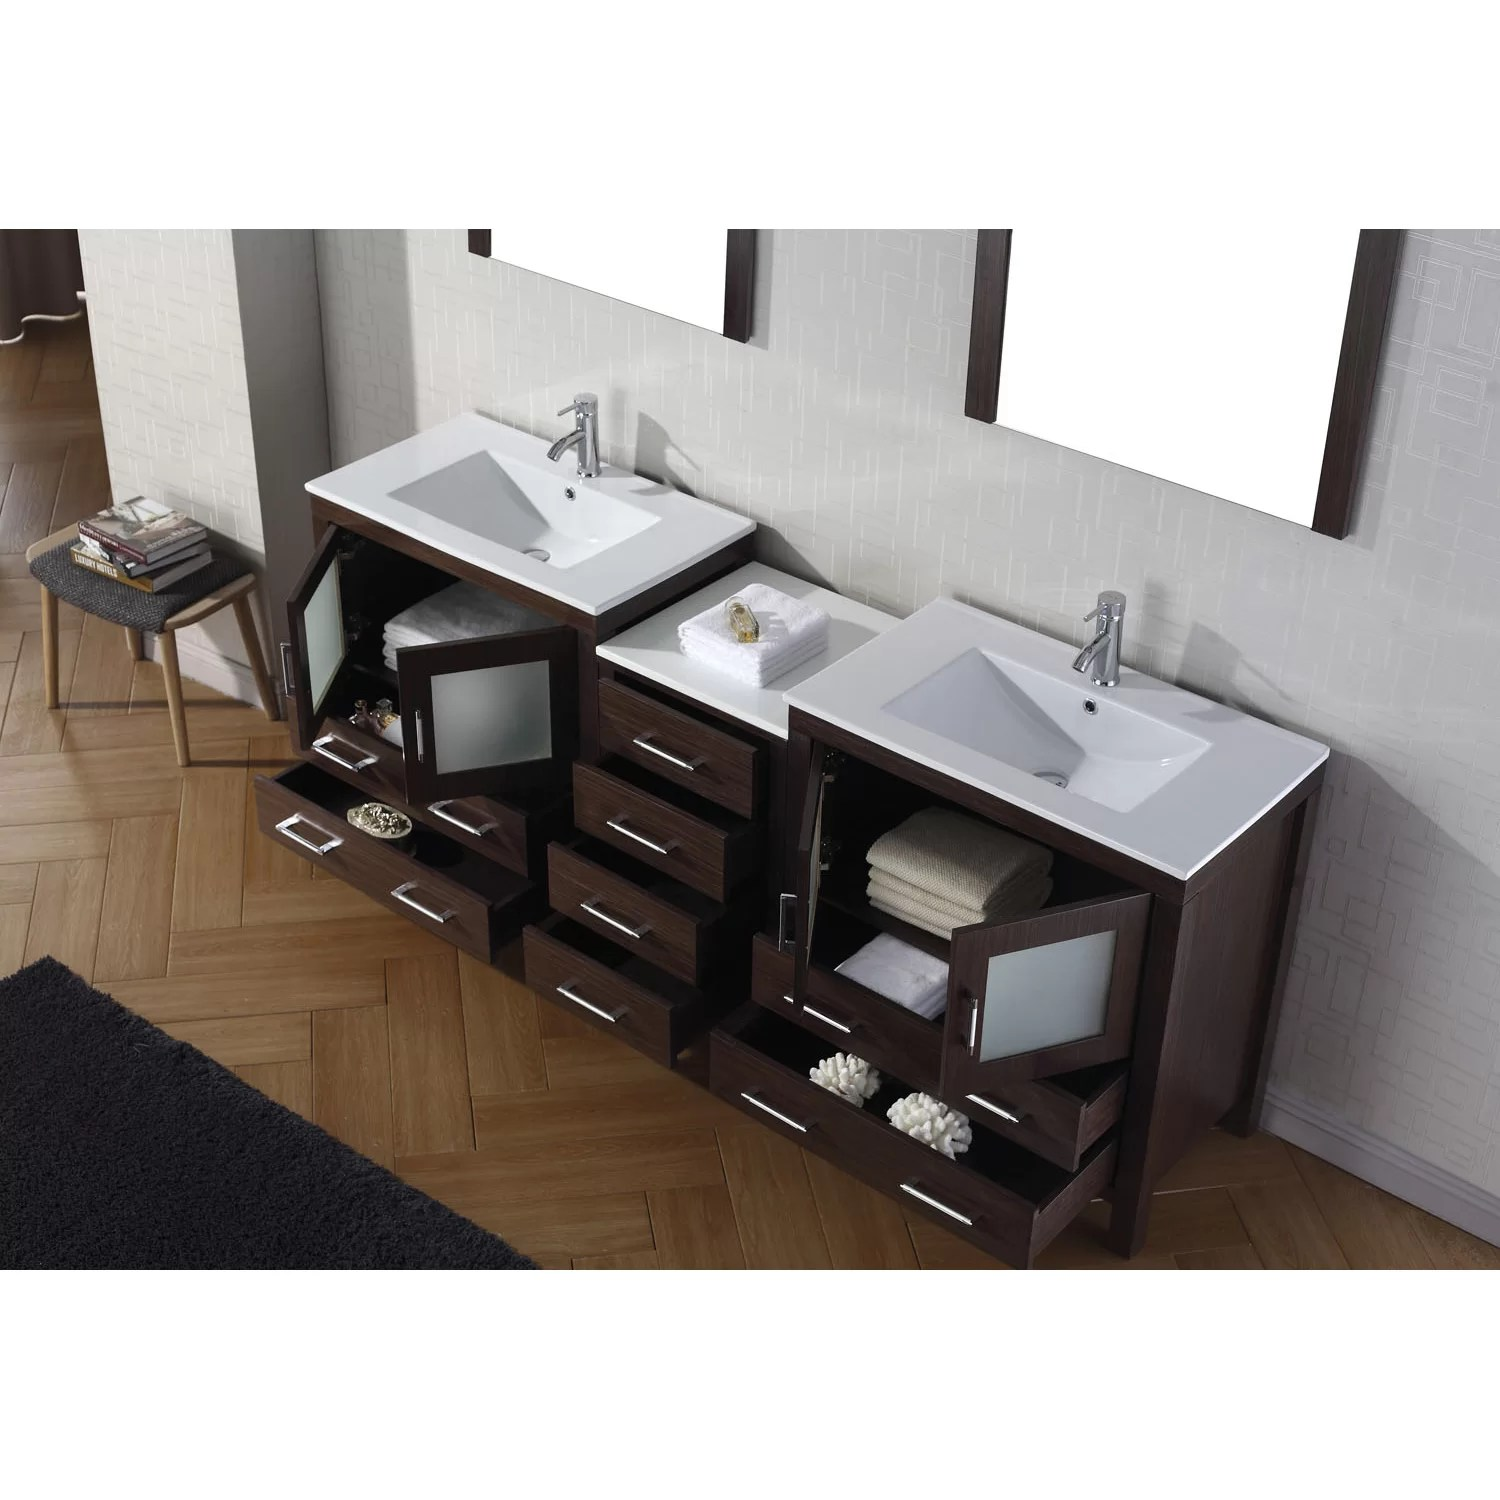 3 Piece Vanity Mirror Shiloh 3 Piece 82 Quot Double Vanity And Mirror Set And Reviews